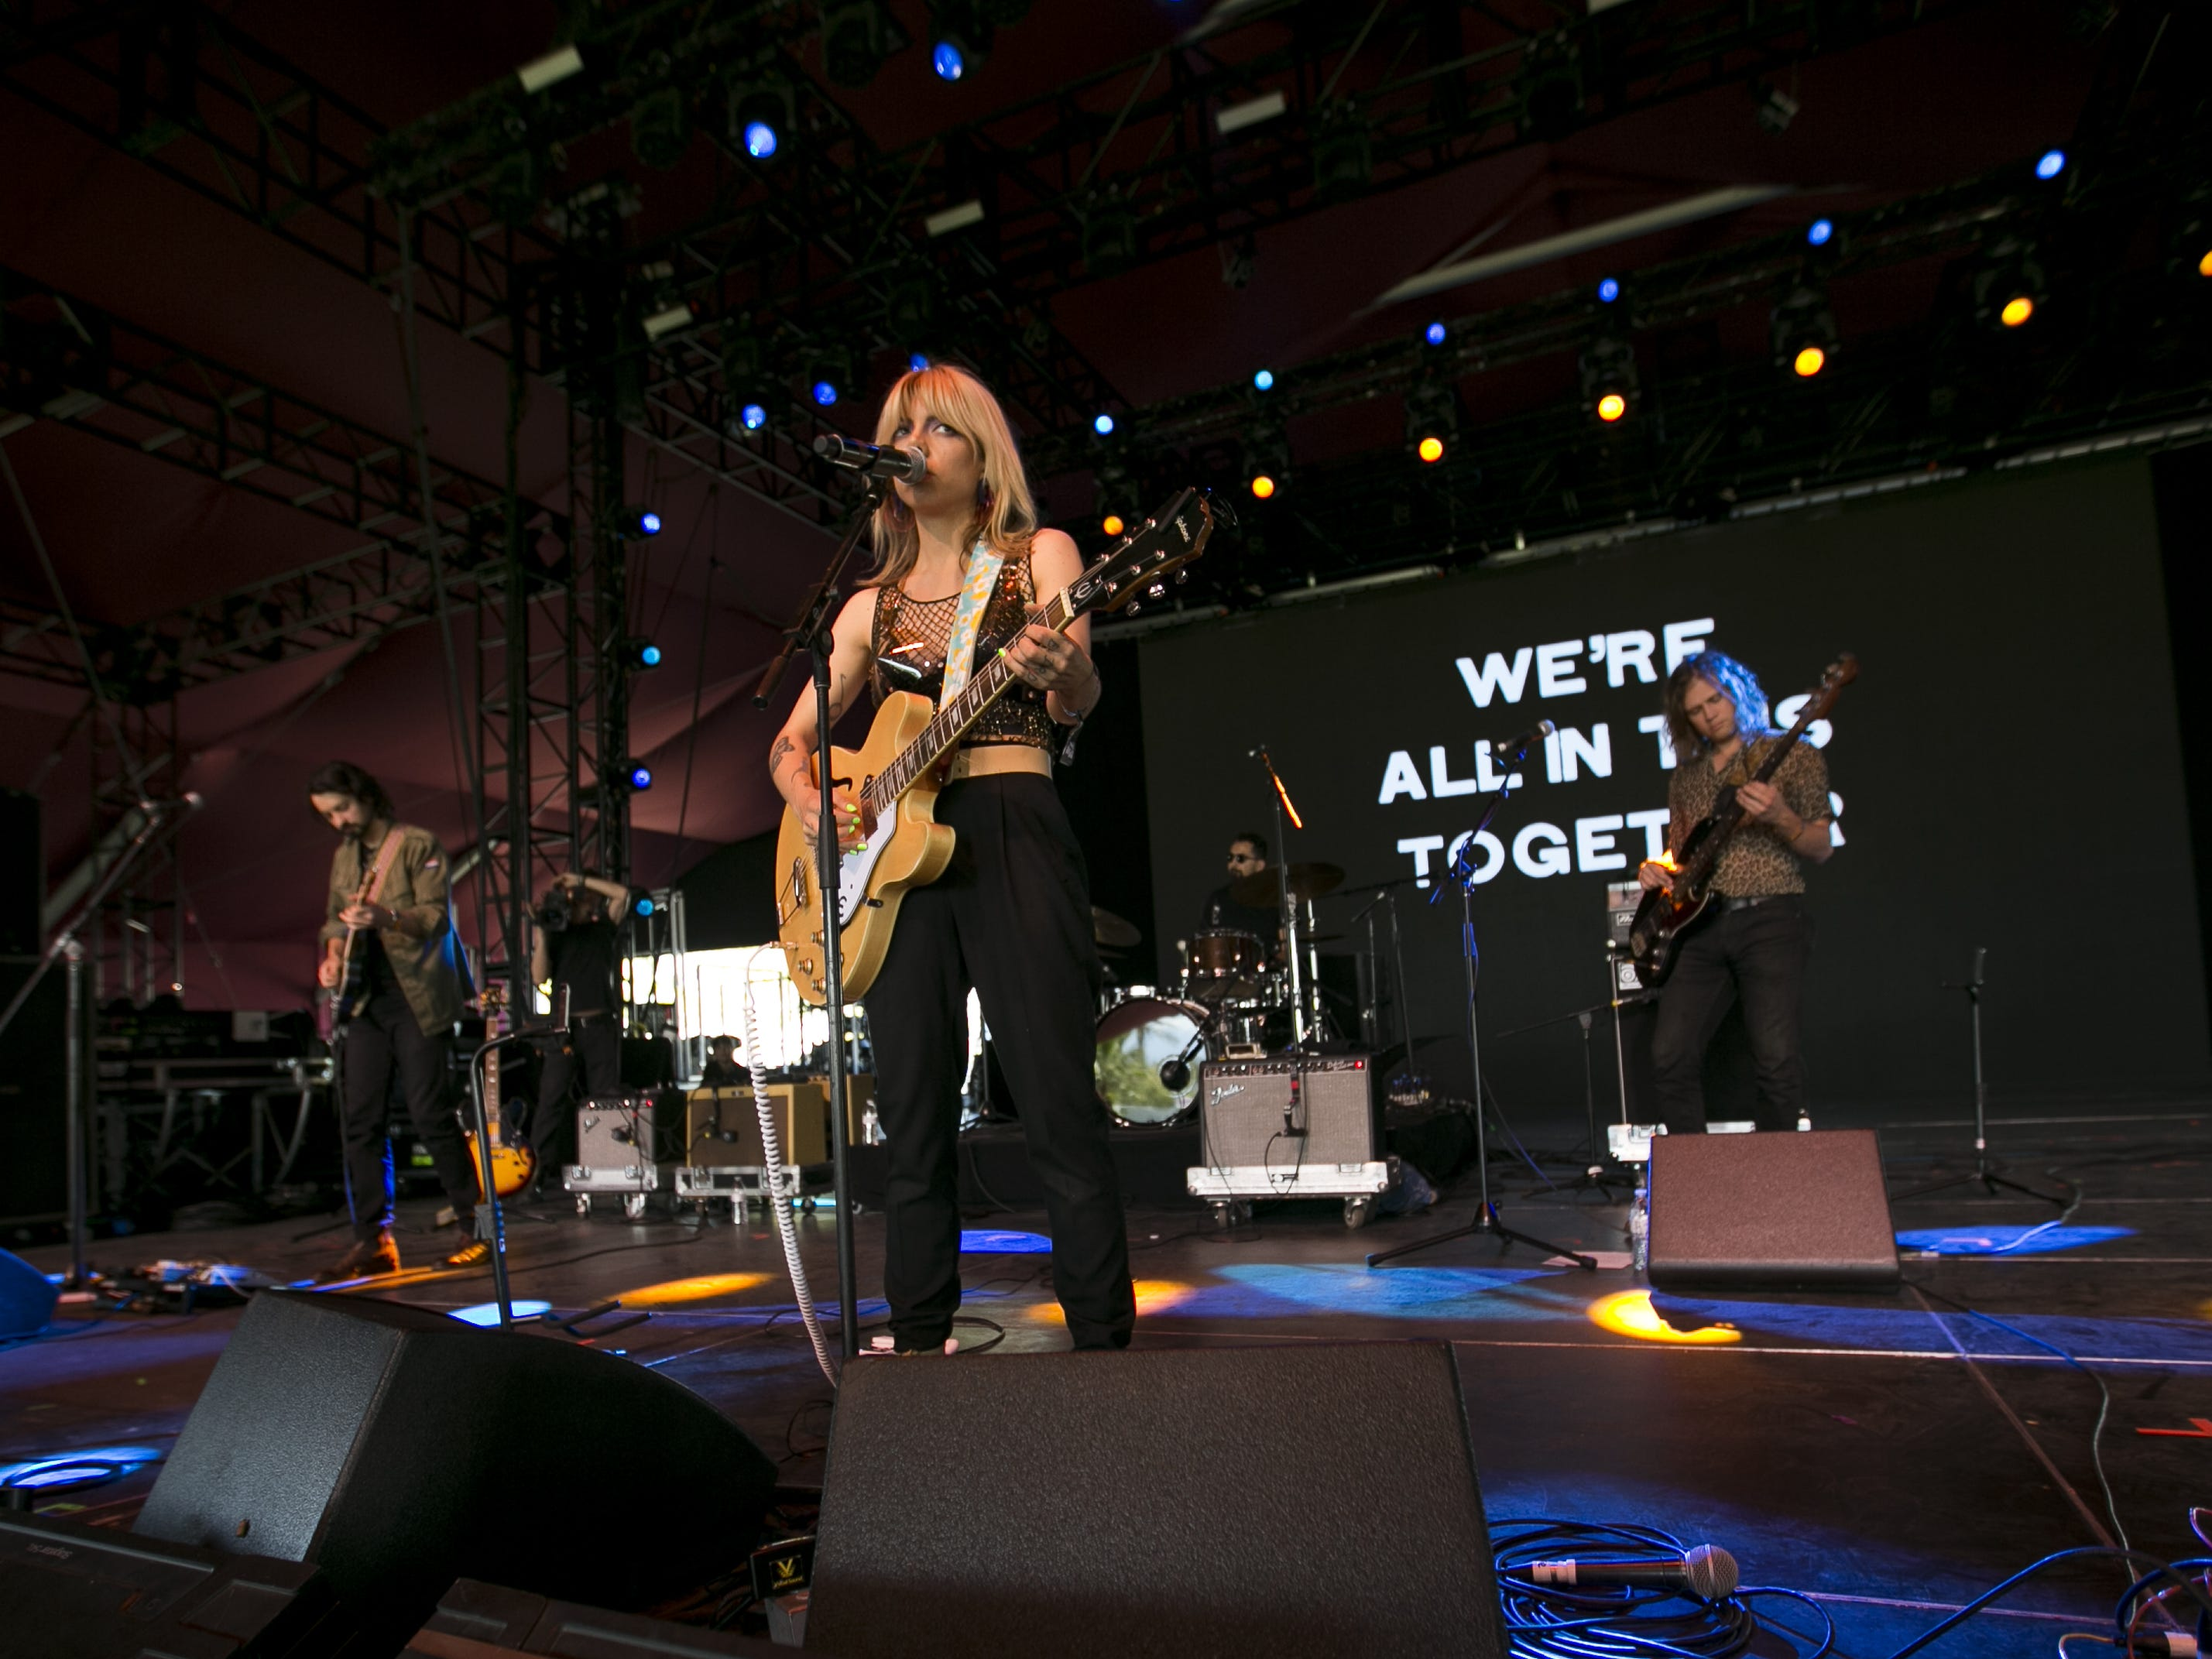 Hurray for the Riff Raff perform on the main stage at the Coachella Valley Music and Arts Festival in Indio, Calif. on April 12, 2019.